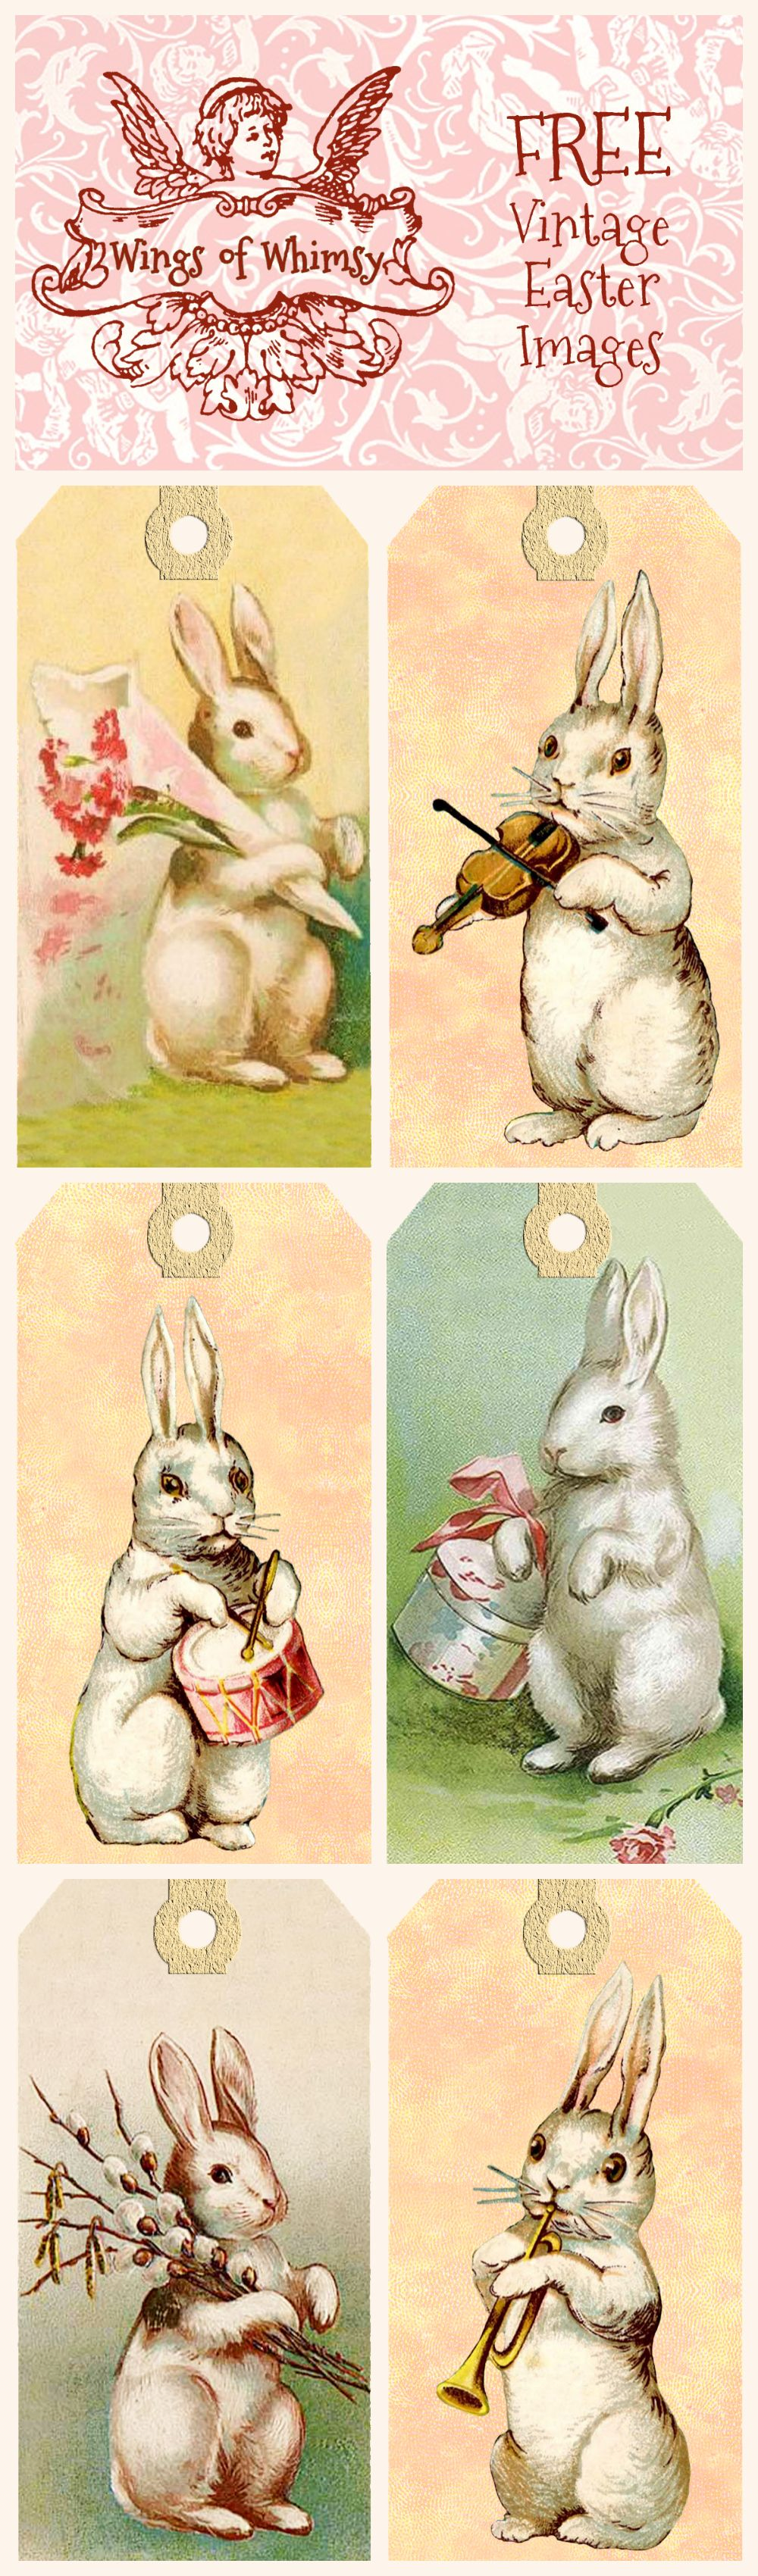 Vintage Easter Bunny Tags U2013 Free Printables  Free Printable Religious Easter Cards